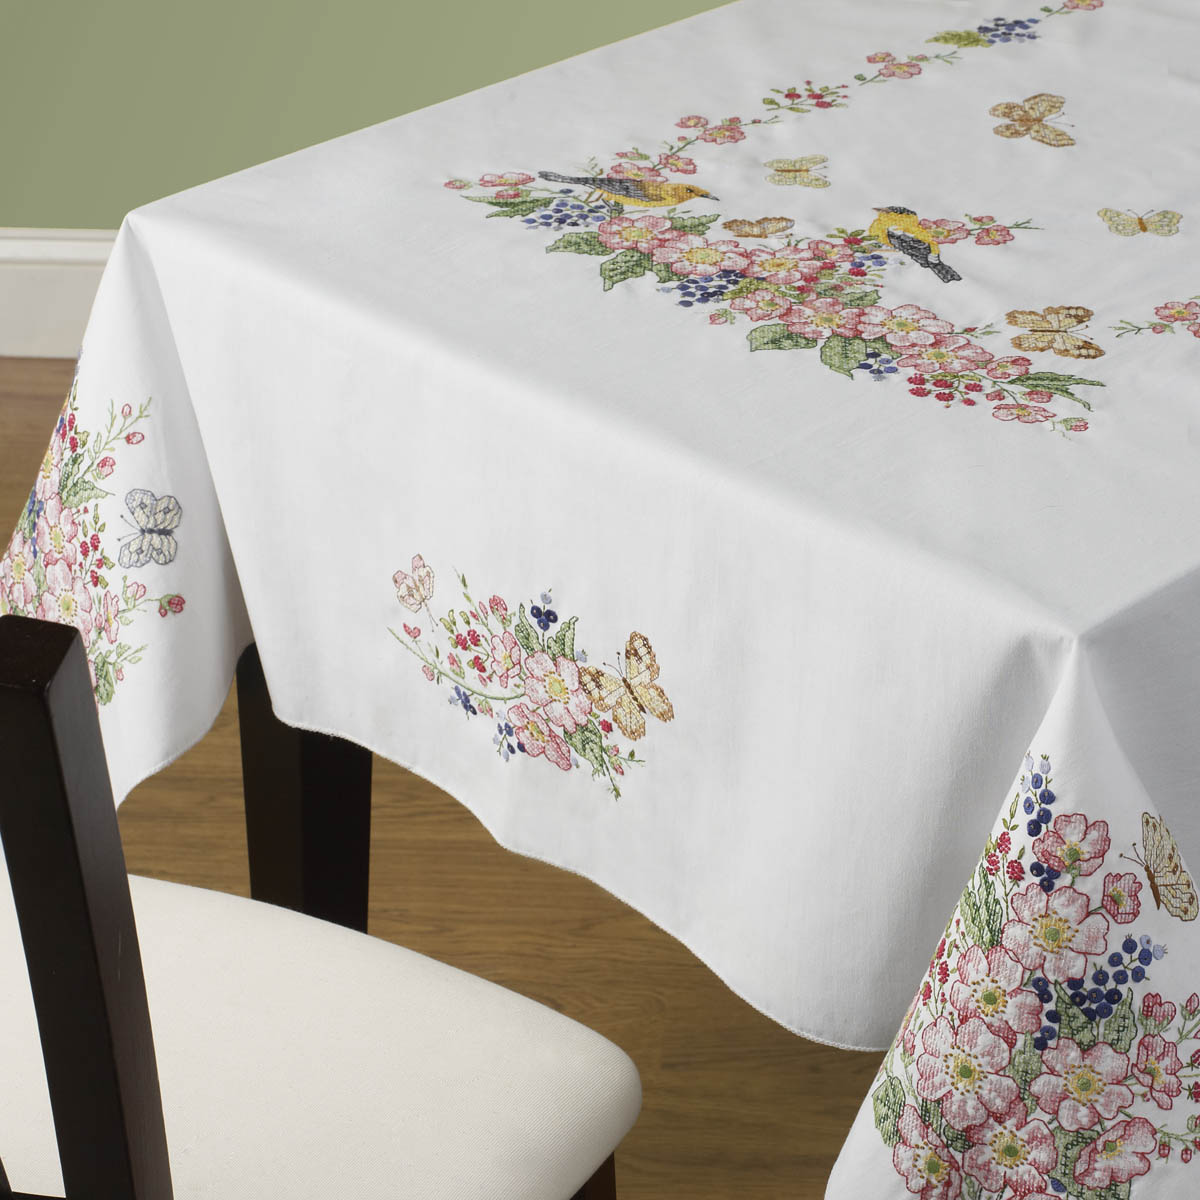 Bucilla ® Stamped Cross Stitch - Table Ensembles - Butterflies and Birds - Tablecloth, 60 x 90